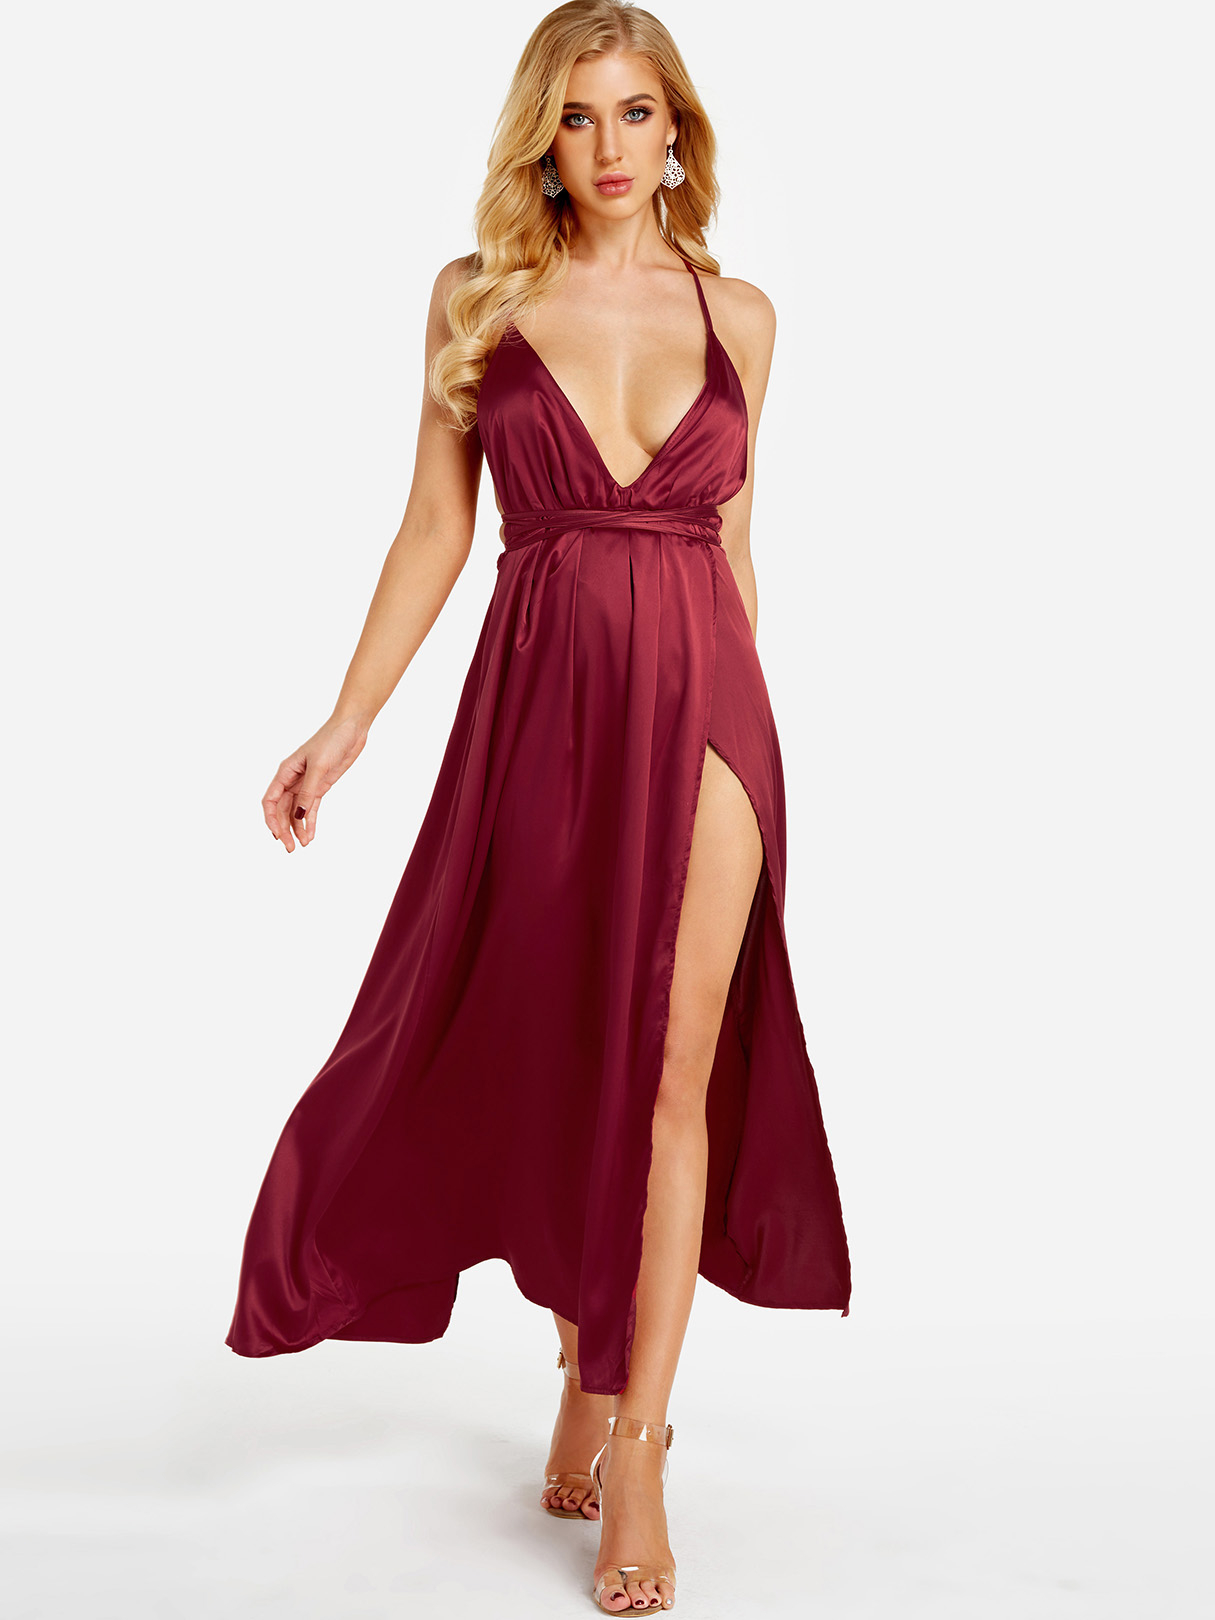 Burgundy Backless Design Deep V Neck Party Dress it s a party dress короткое платье